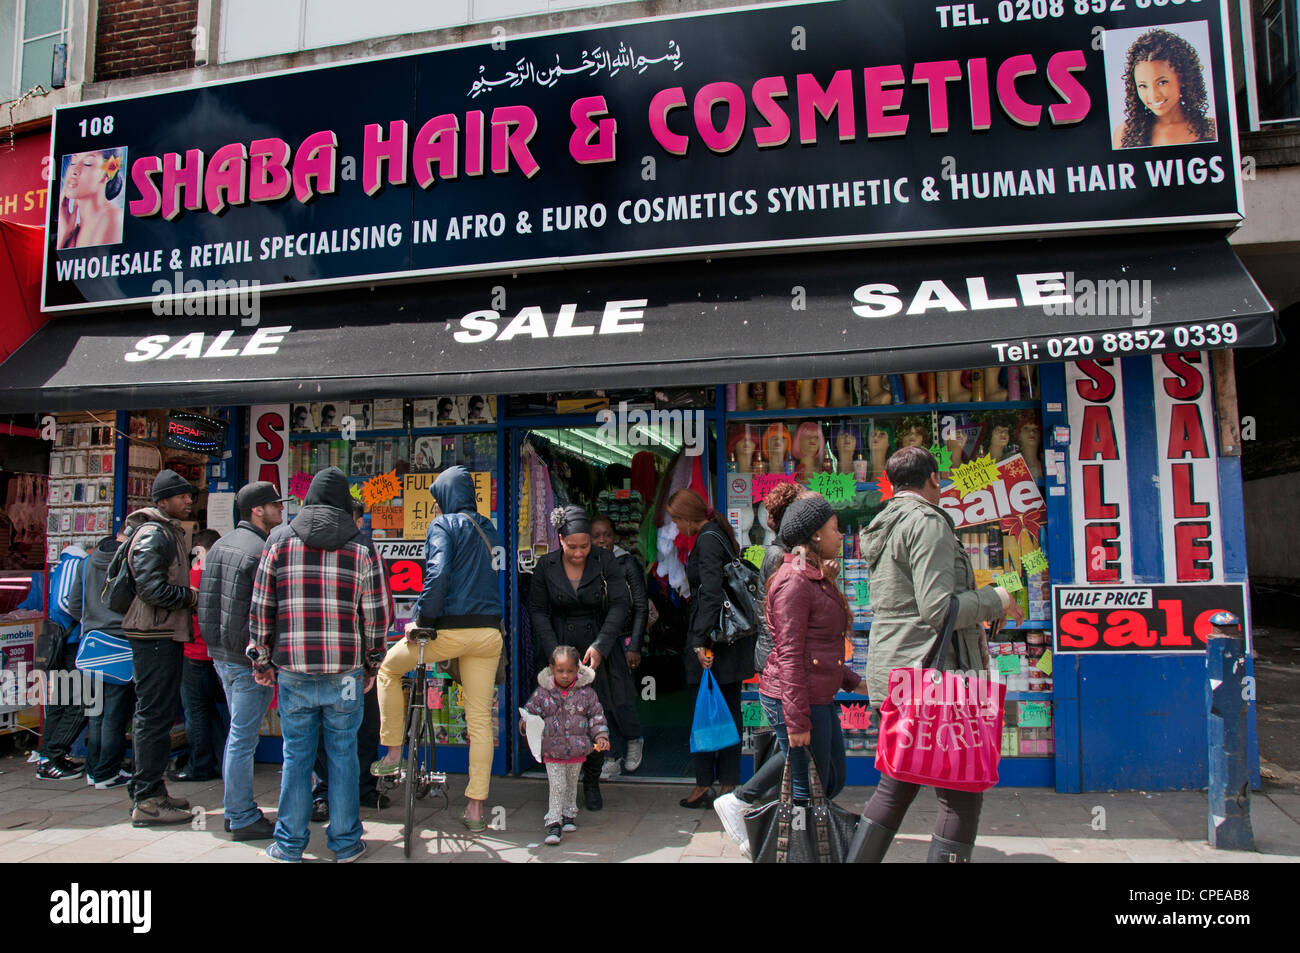 bargain afro hair products shop in lewisham south london stock photo royalty free image. Black Bedroom Furniture Sets. Home Design Ideas